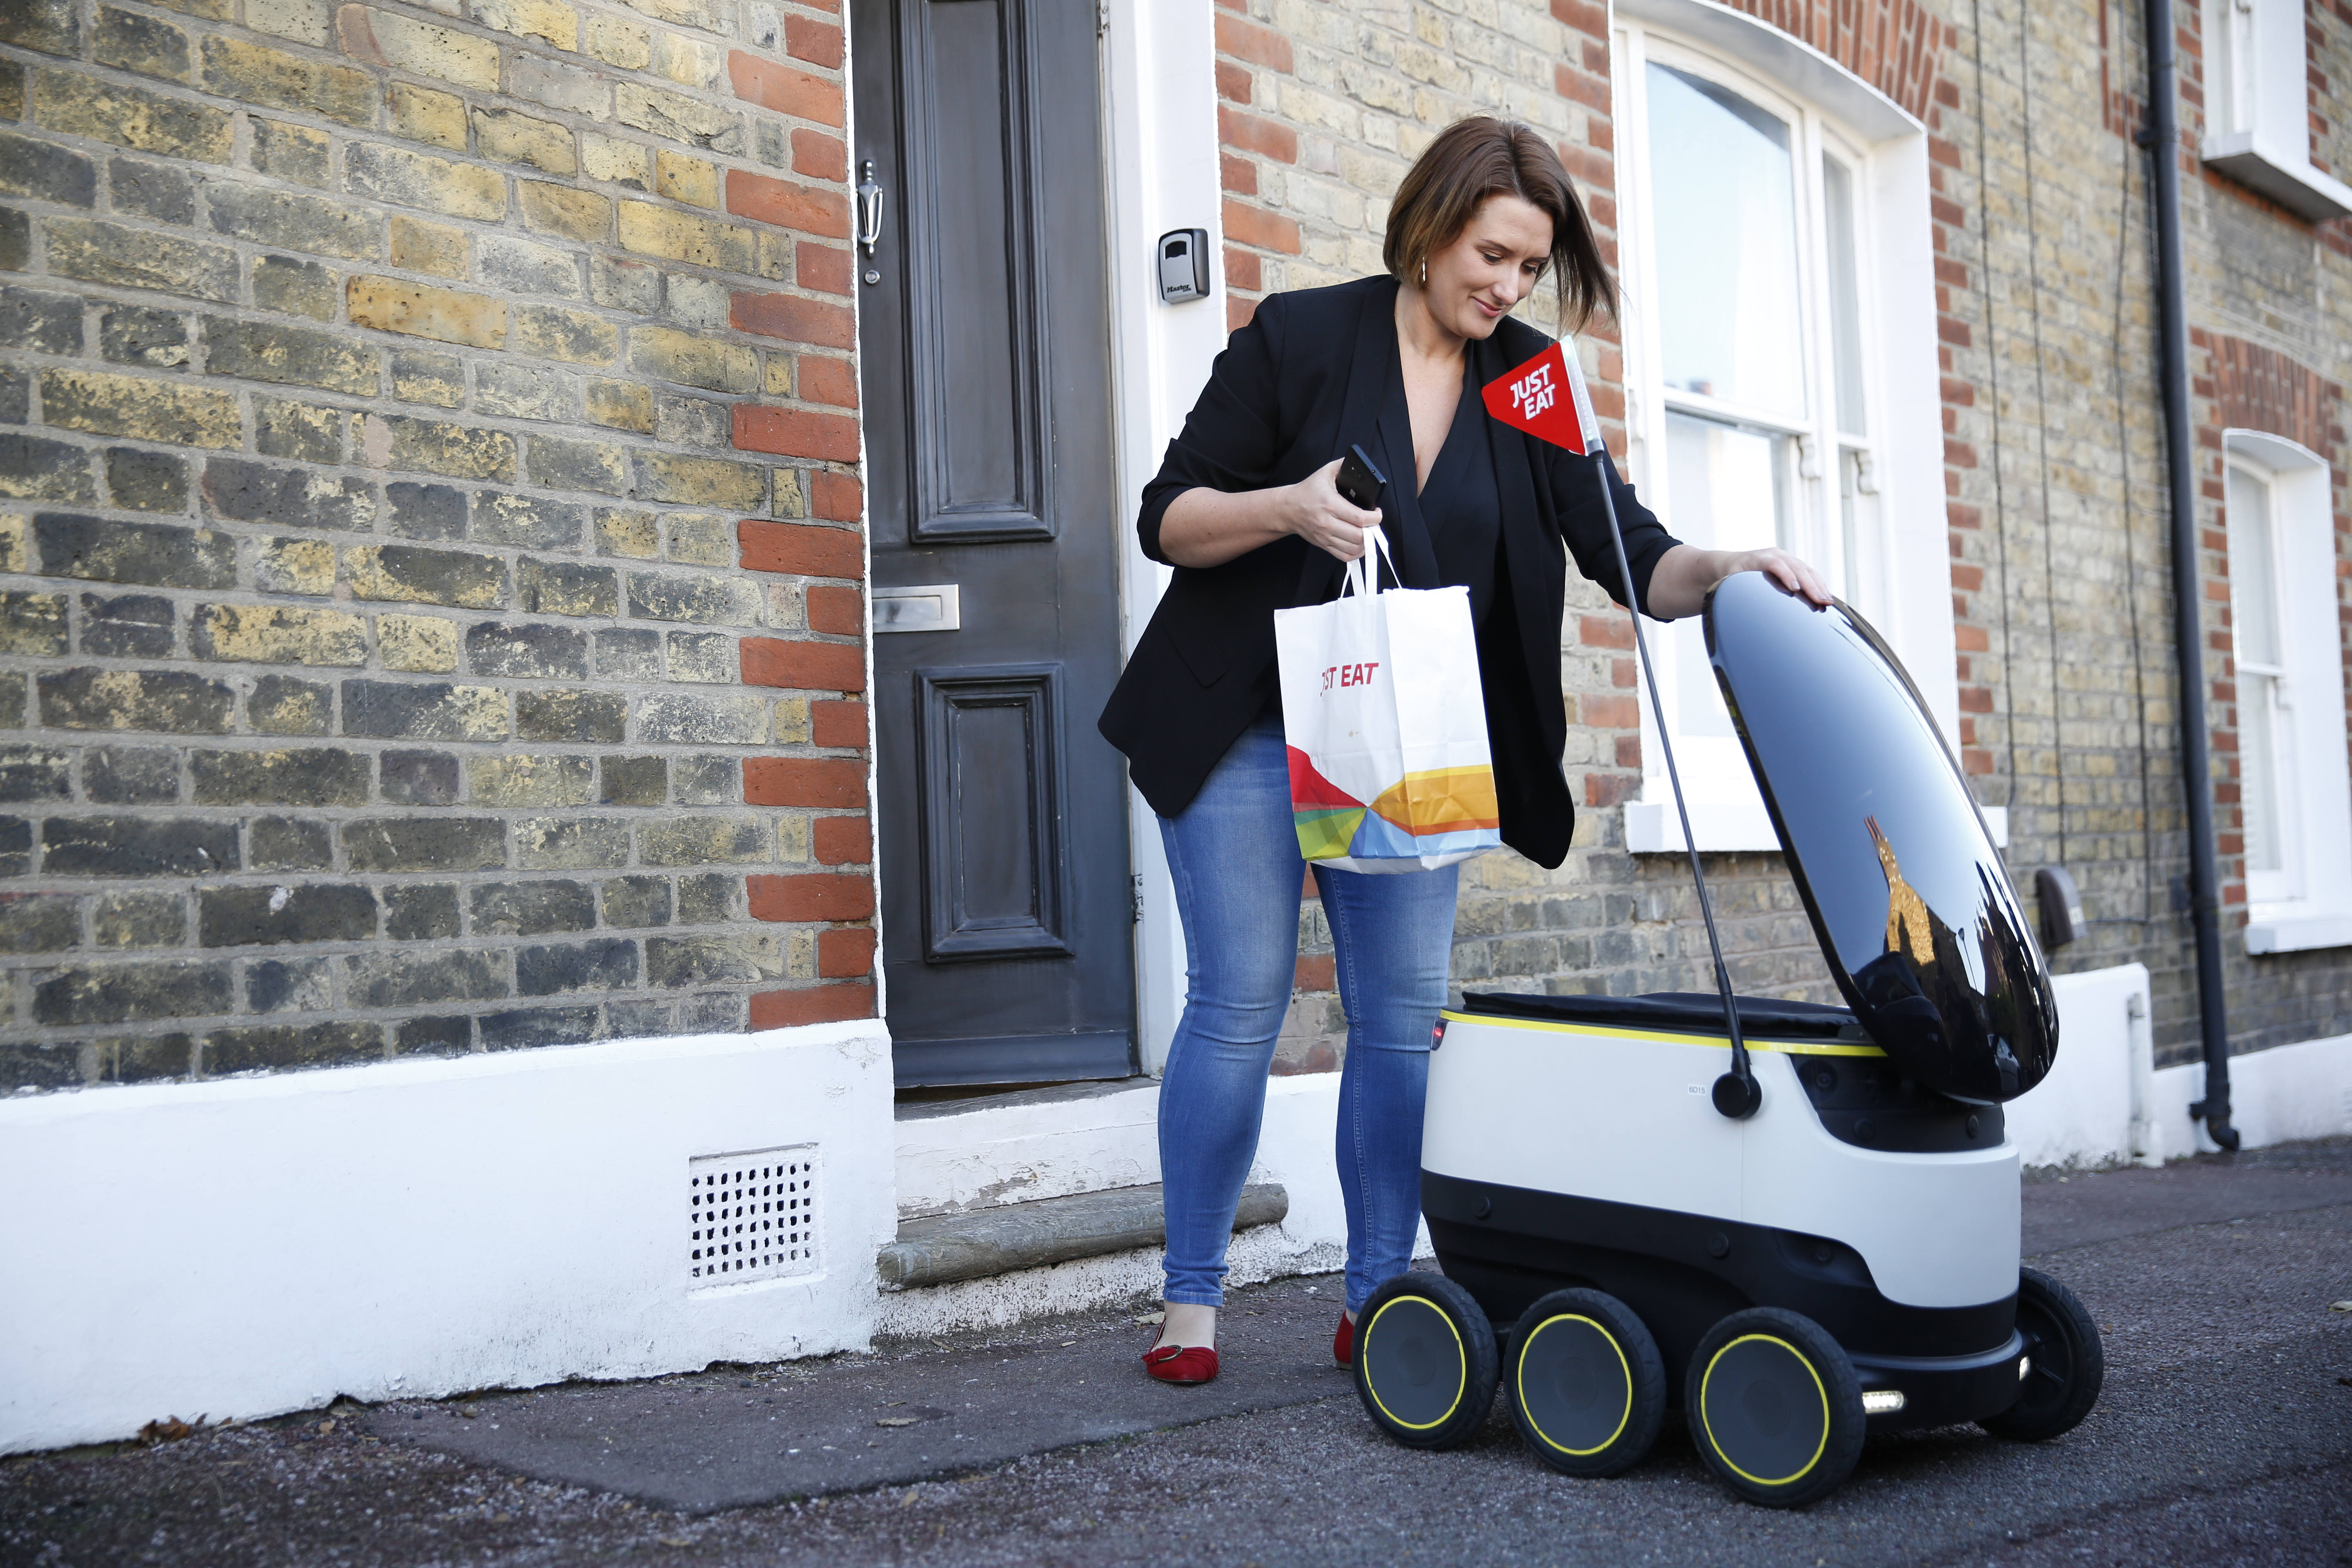 Just Eat, the world's largest online takeaway food company, and Starship Technologies have changed the face of home delivery by making the world's first online food delivery using a self-driving robot in Greenwich, South East London. After five months of exhaustive testing in the area, the first live delivery signals the next step in this revolutionary pilot program which will see local Just Eat customers receive automated robot deliveries in Greenwich. There are plans to expand the program across London in 2017.